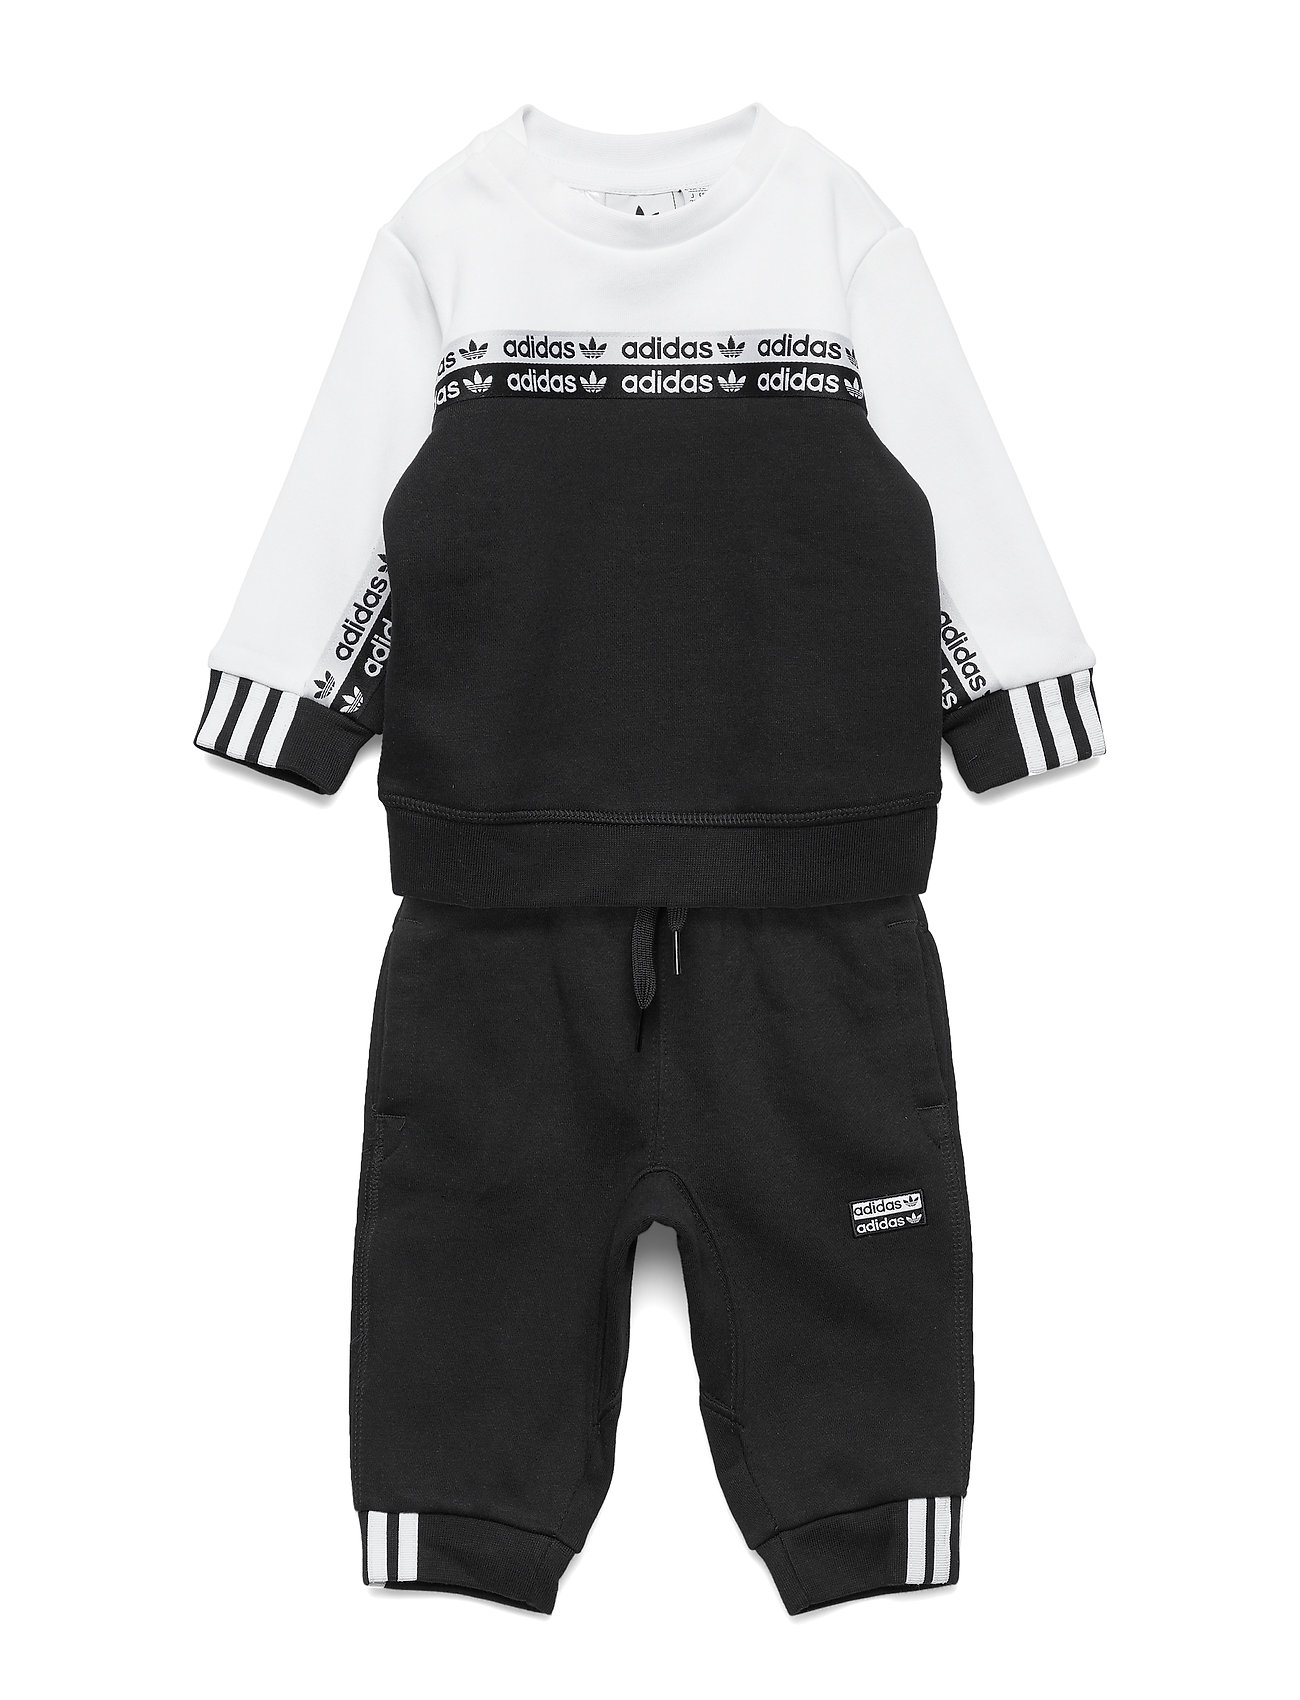 adidas Originals CREW SET - BLACK/WHITE